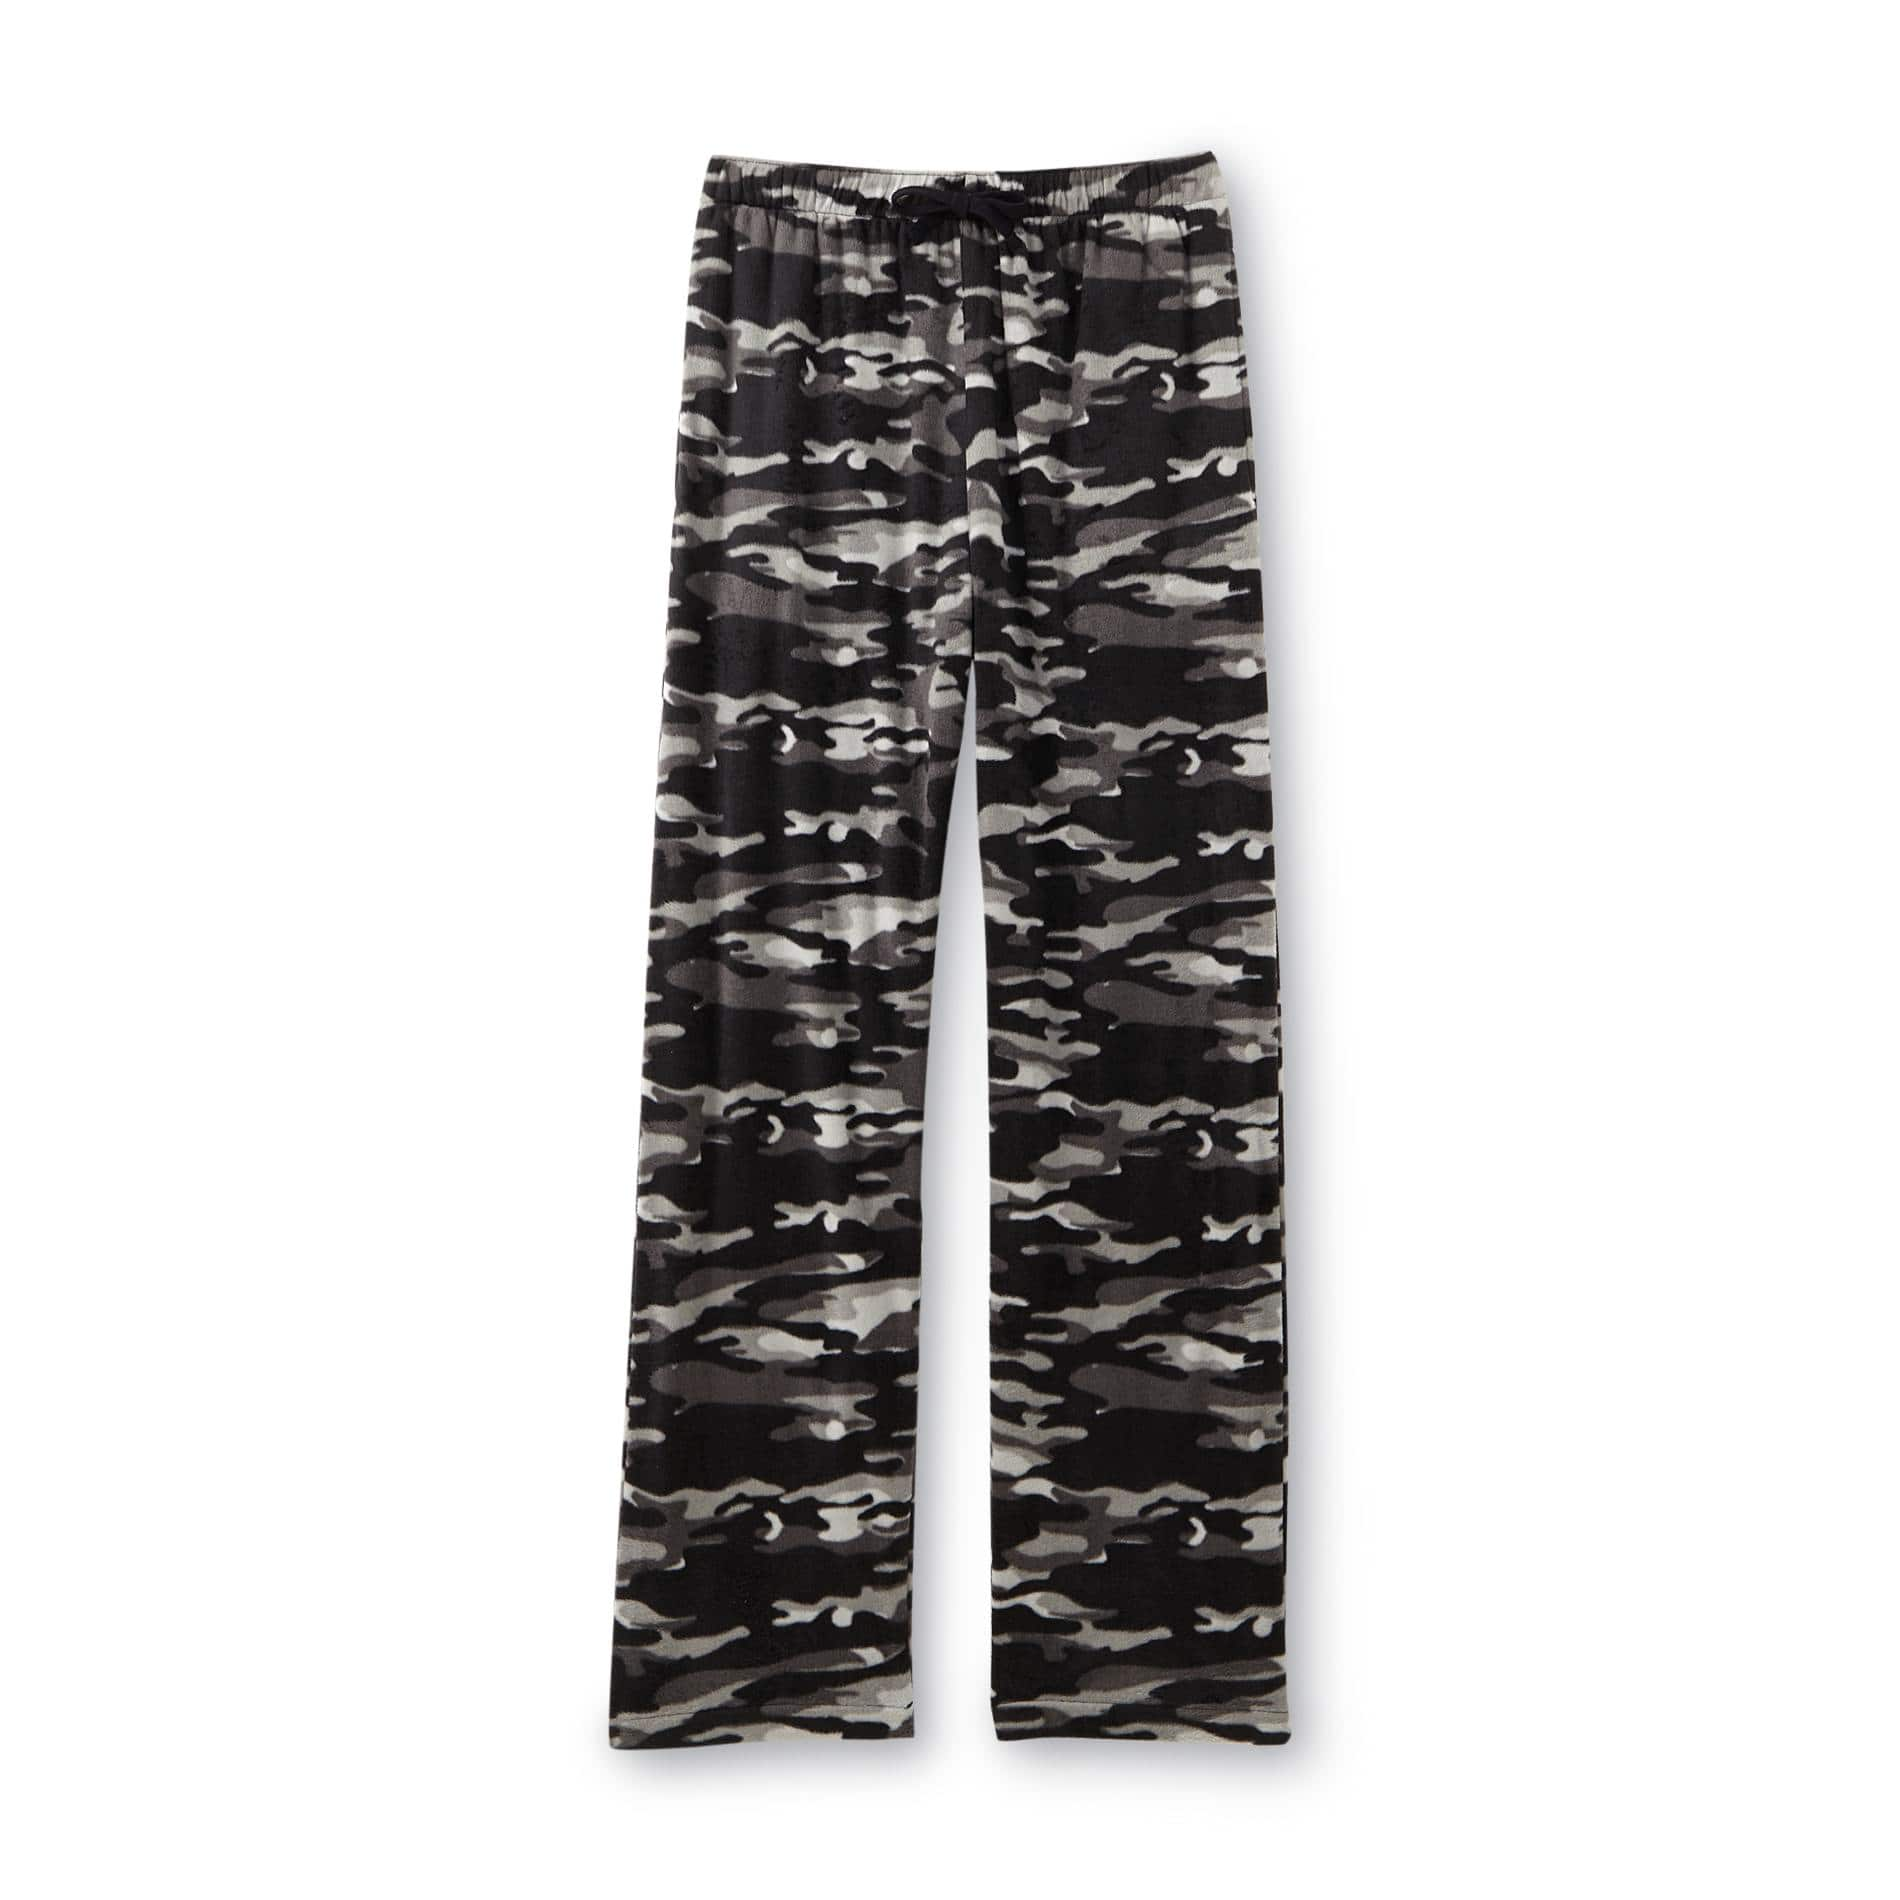 Joe Boxer Men's Fleece Pajama Pants $5.99 w/store pick up ~ Sears